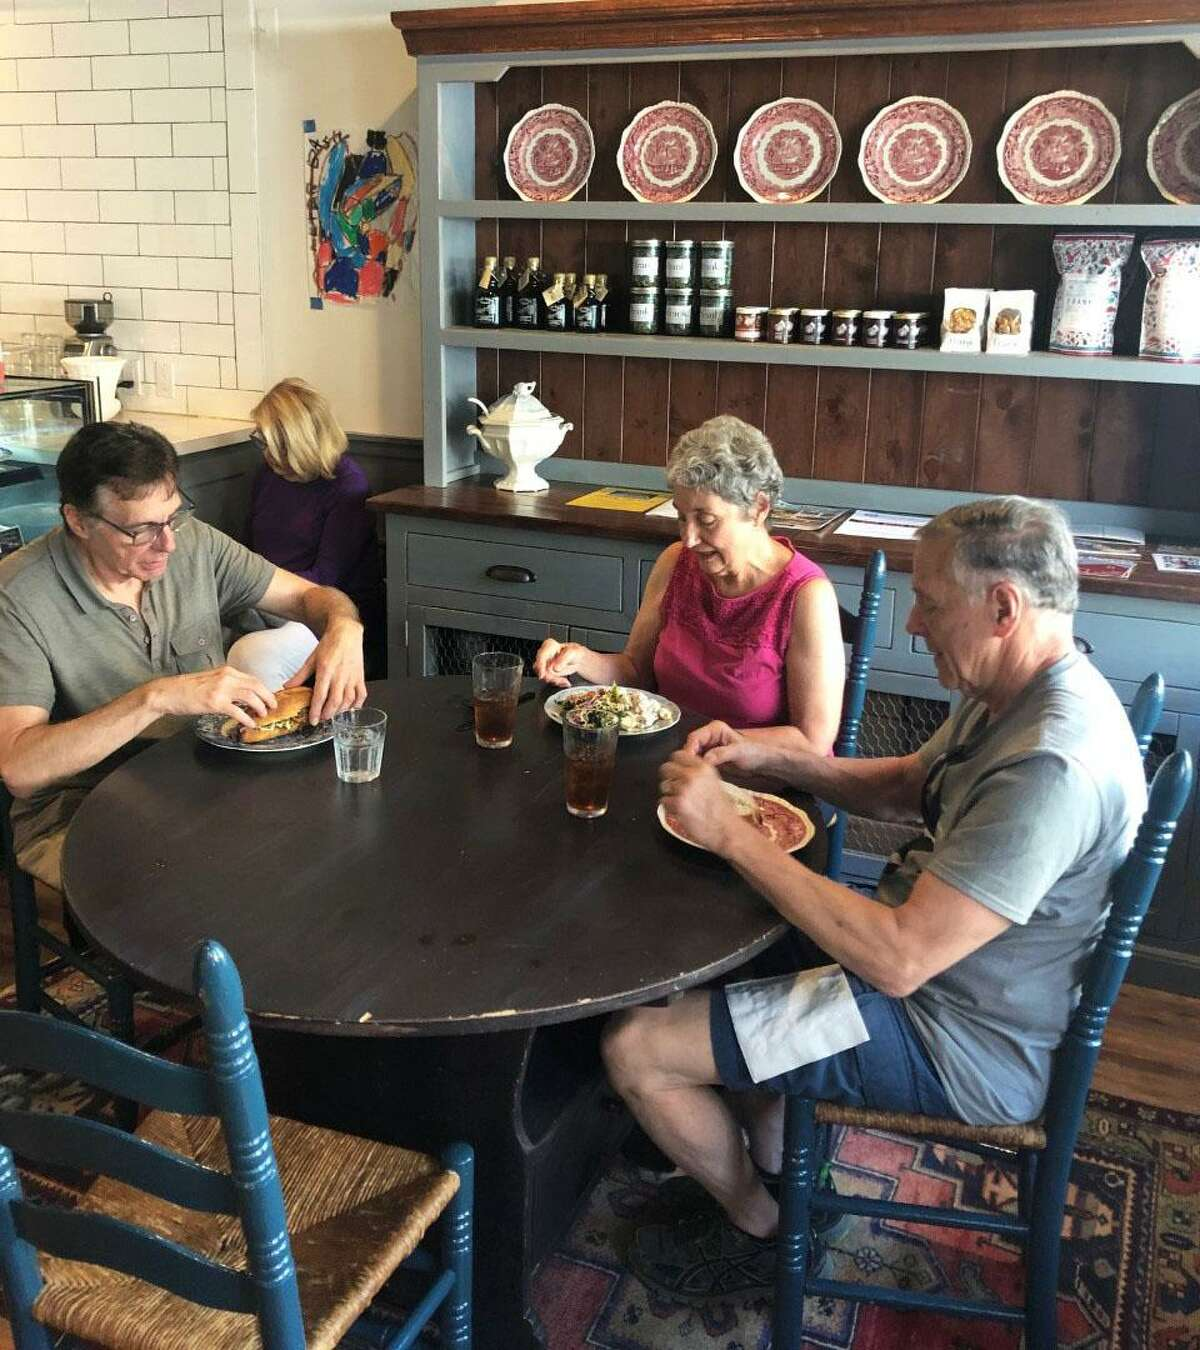 Patrons dine at frank., a shop that opened in May on Main Street in Kent.